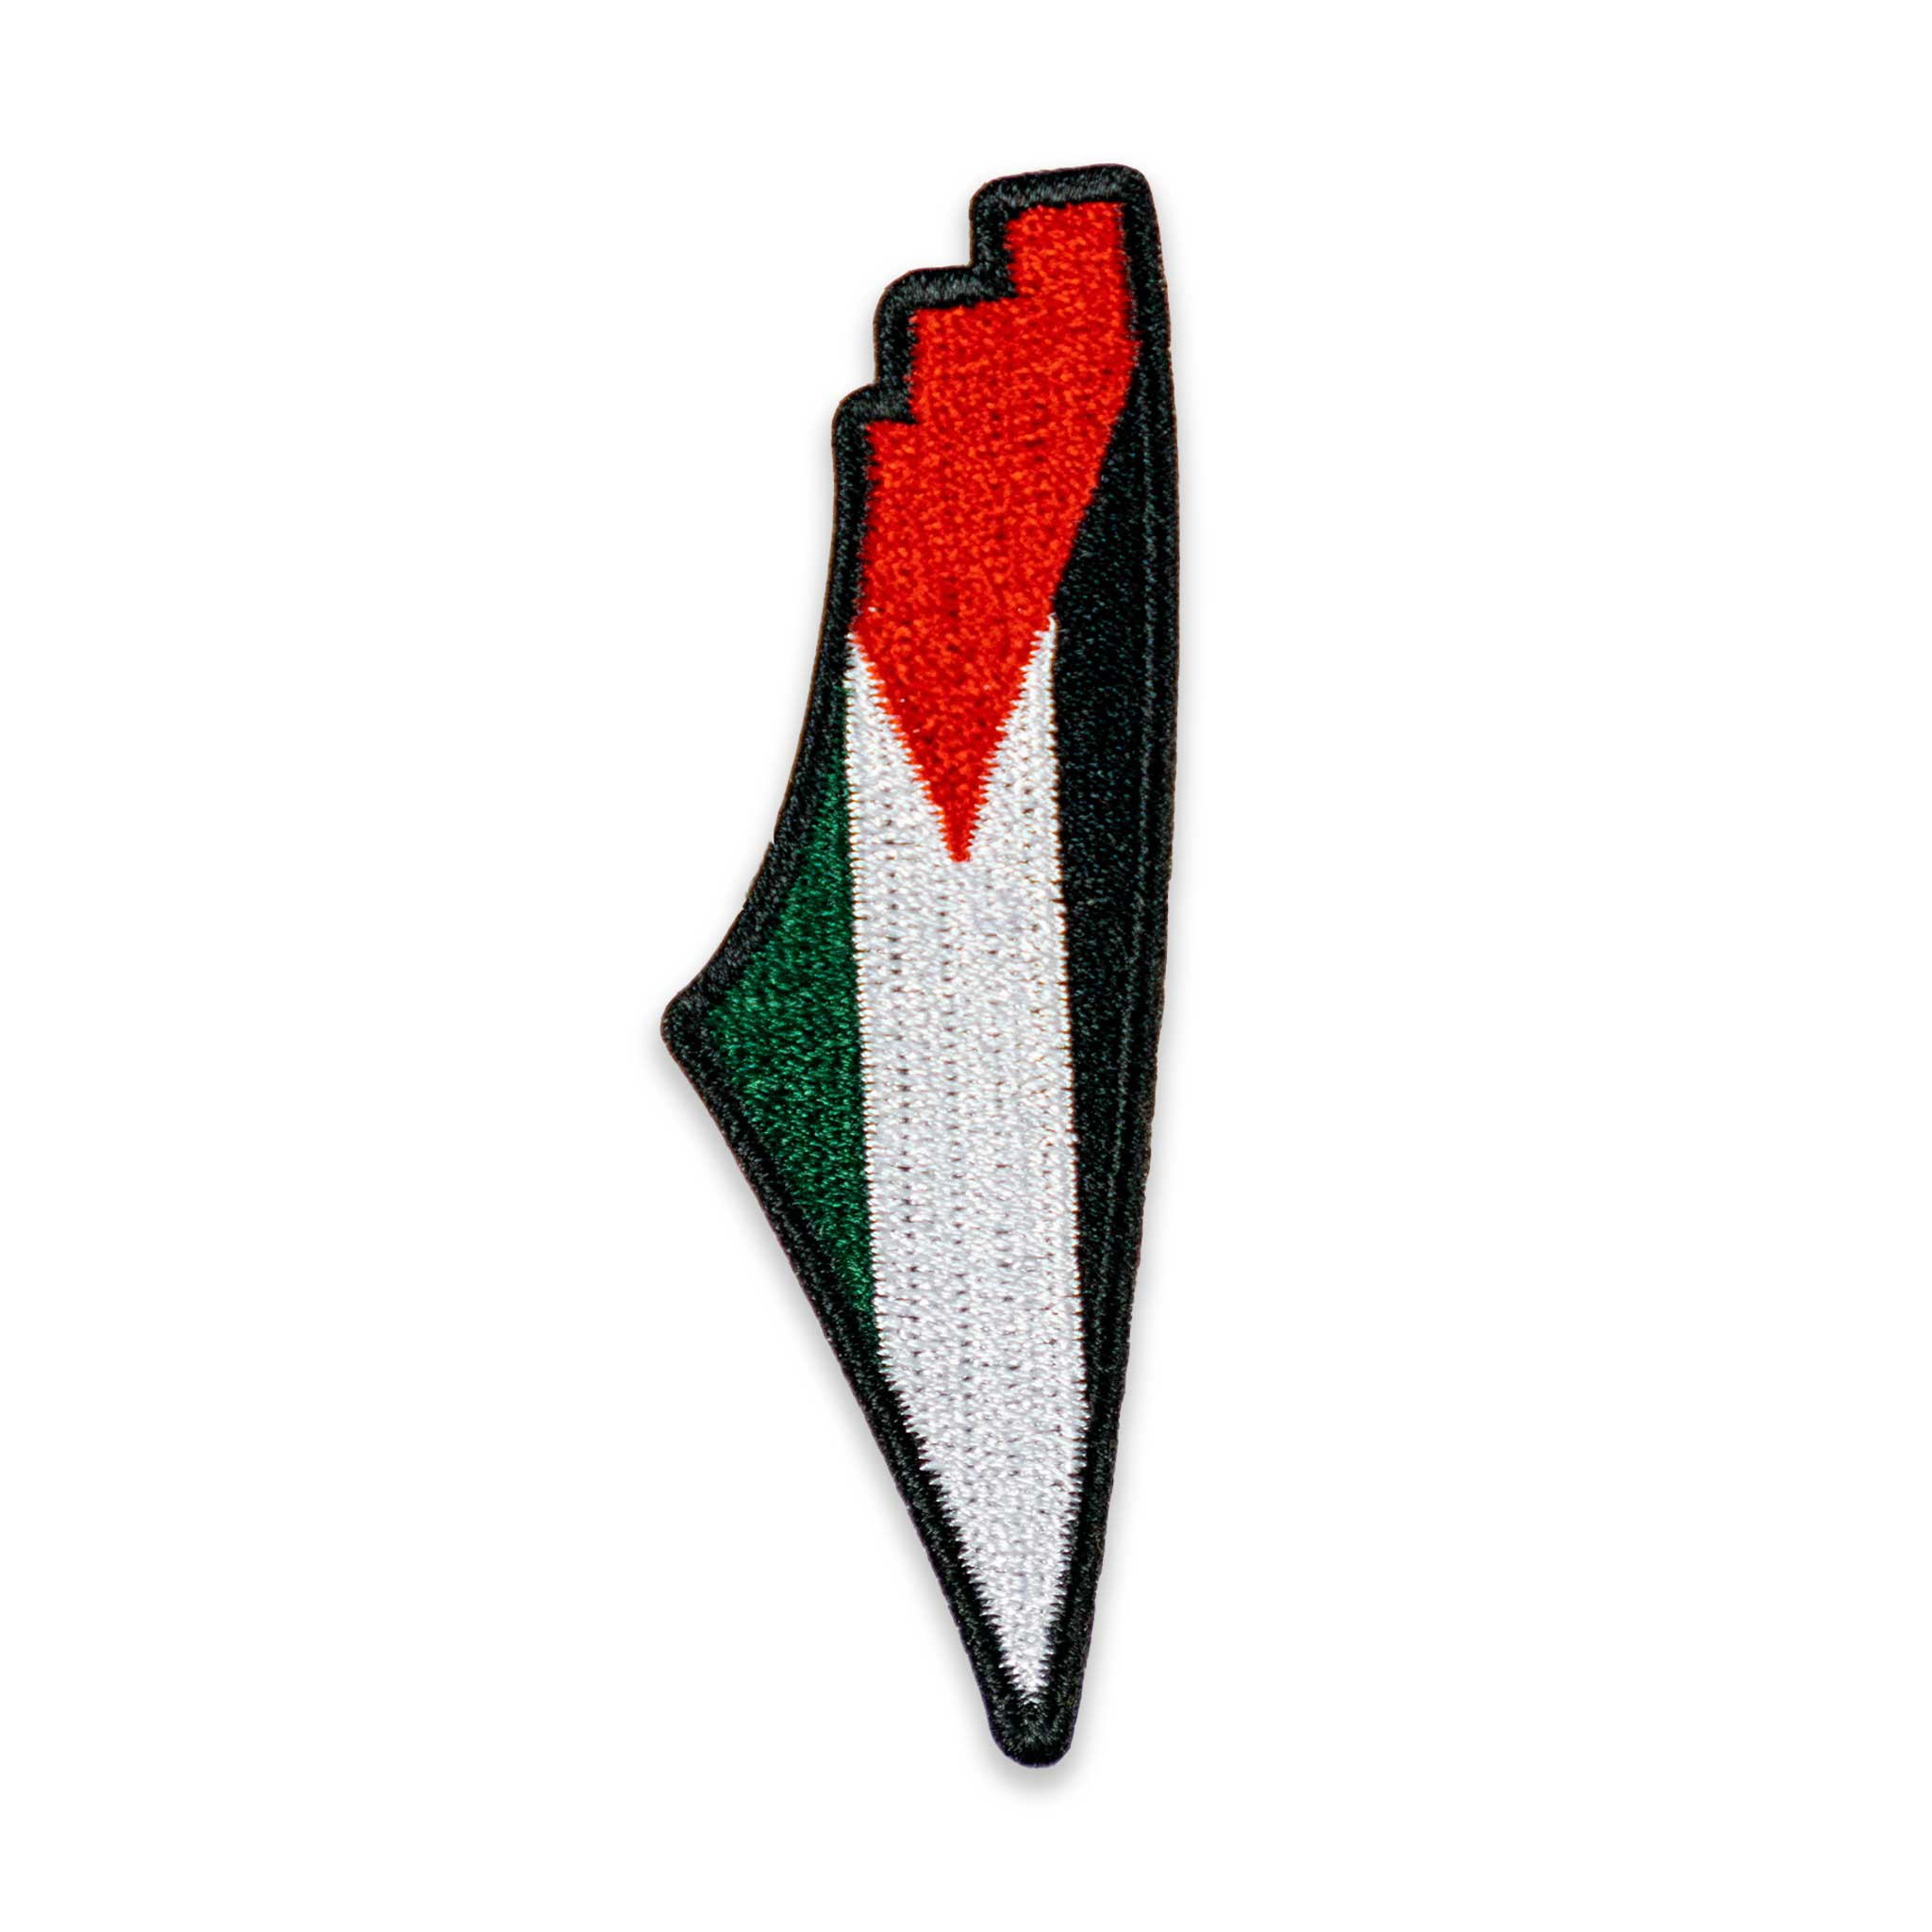 Palestine Map Flag Patch